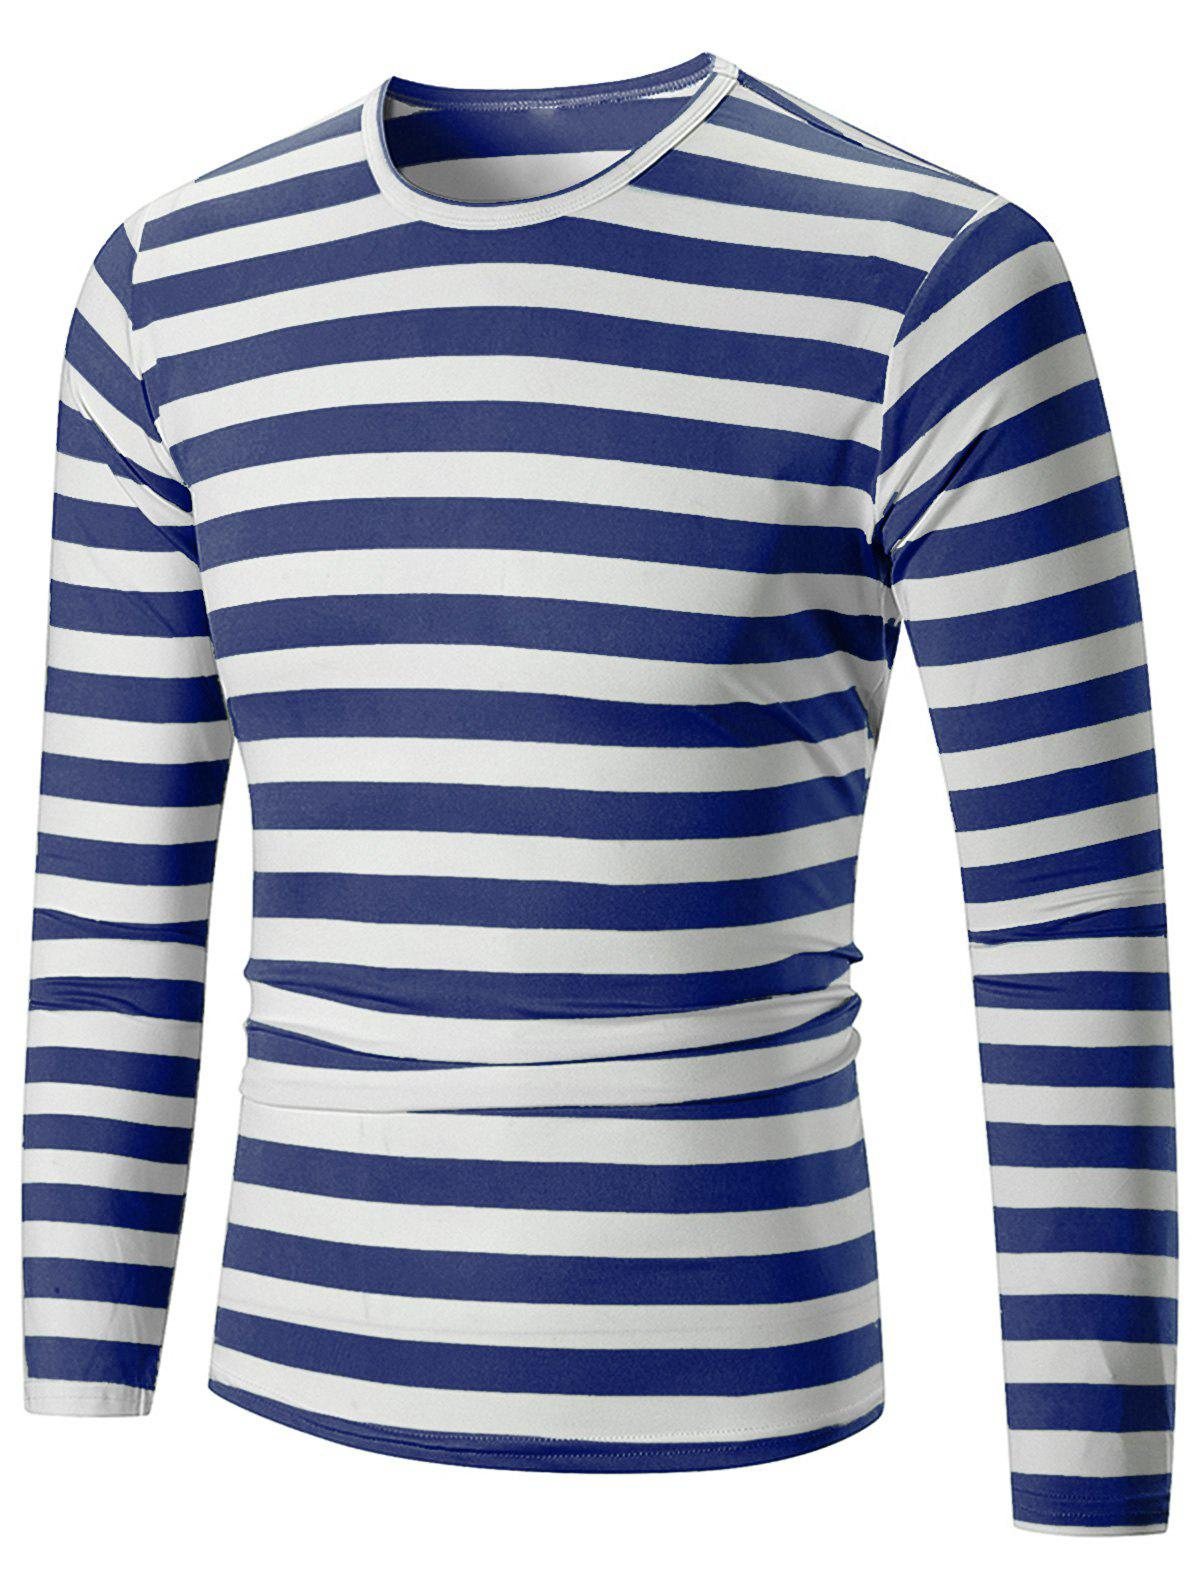 Chic Casual Striped Print Long Sleeve T-shirt